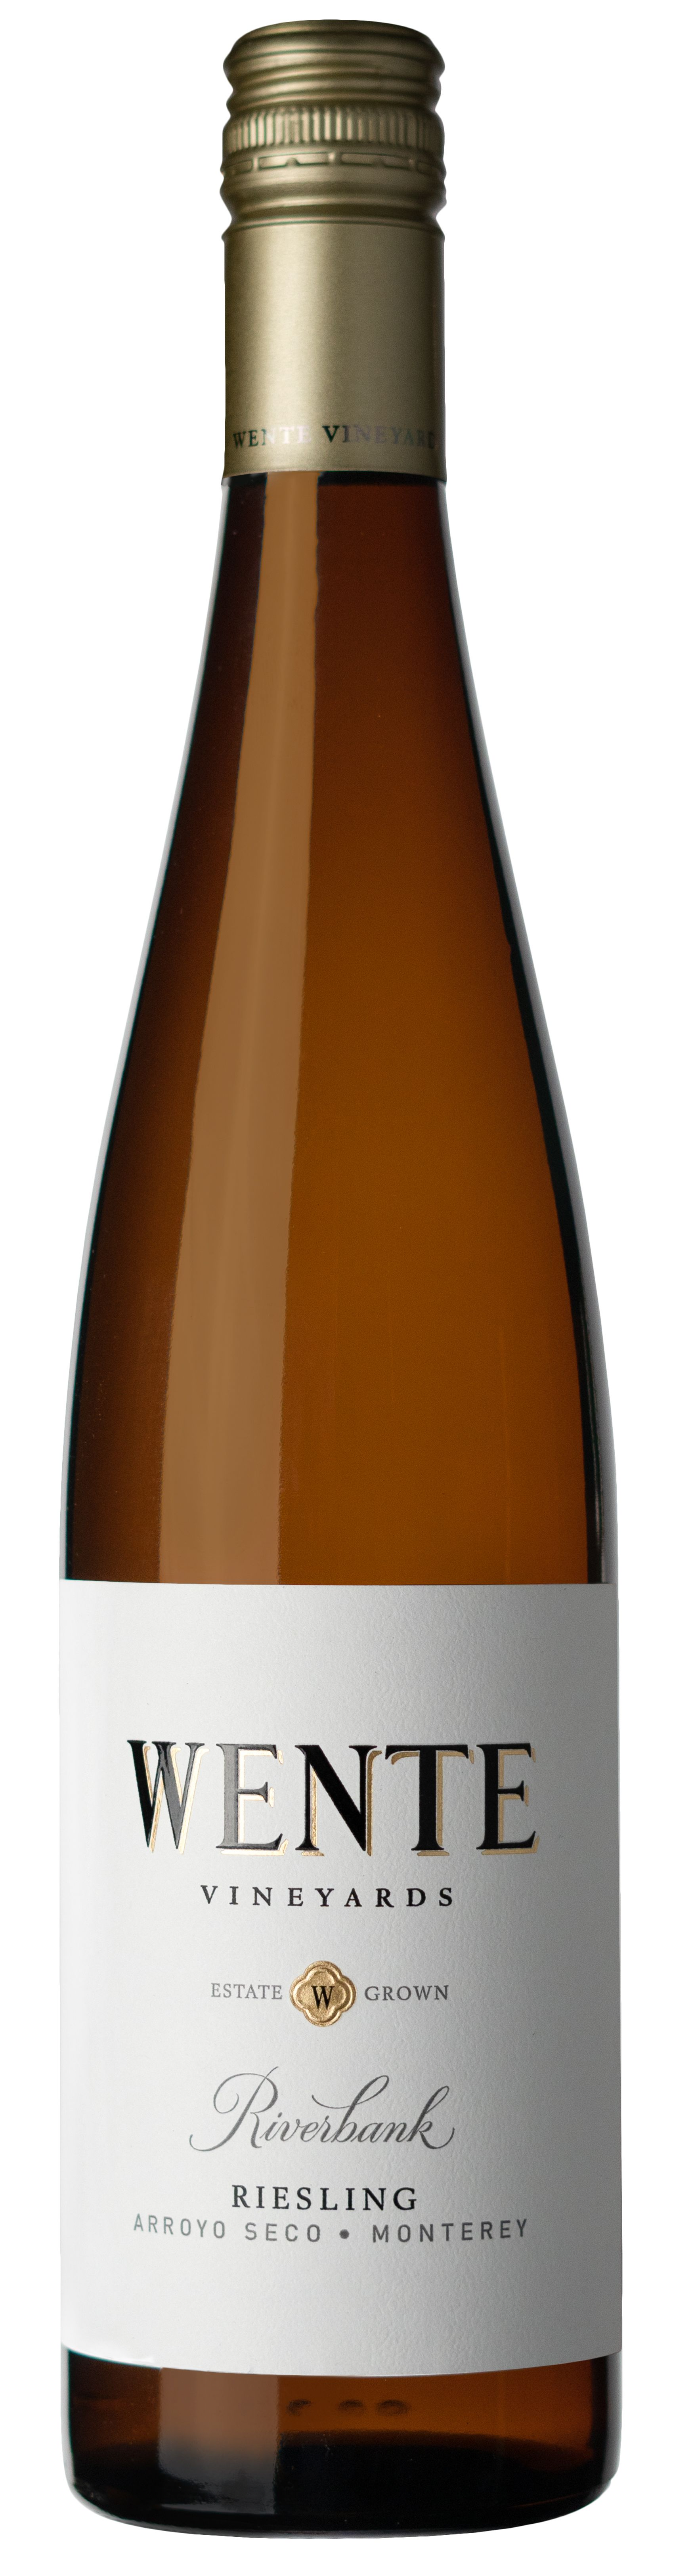 Wente Riverbank Riesling 2018  Front Bottle Shot